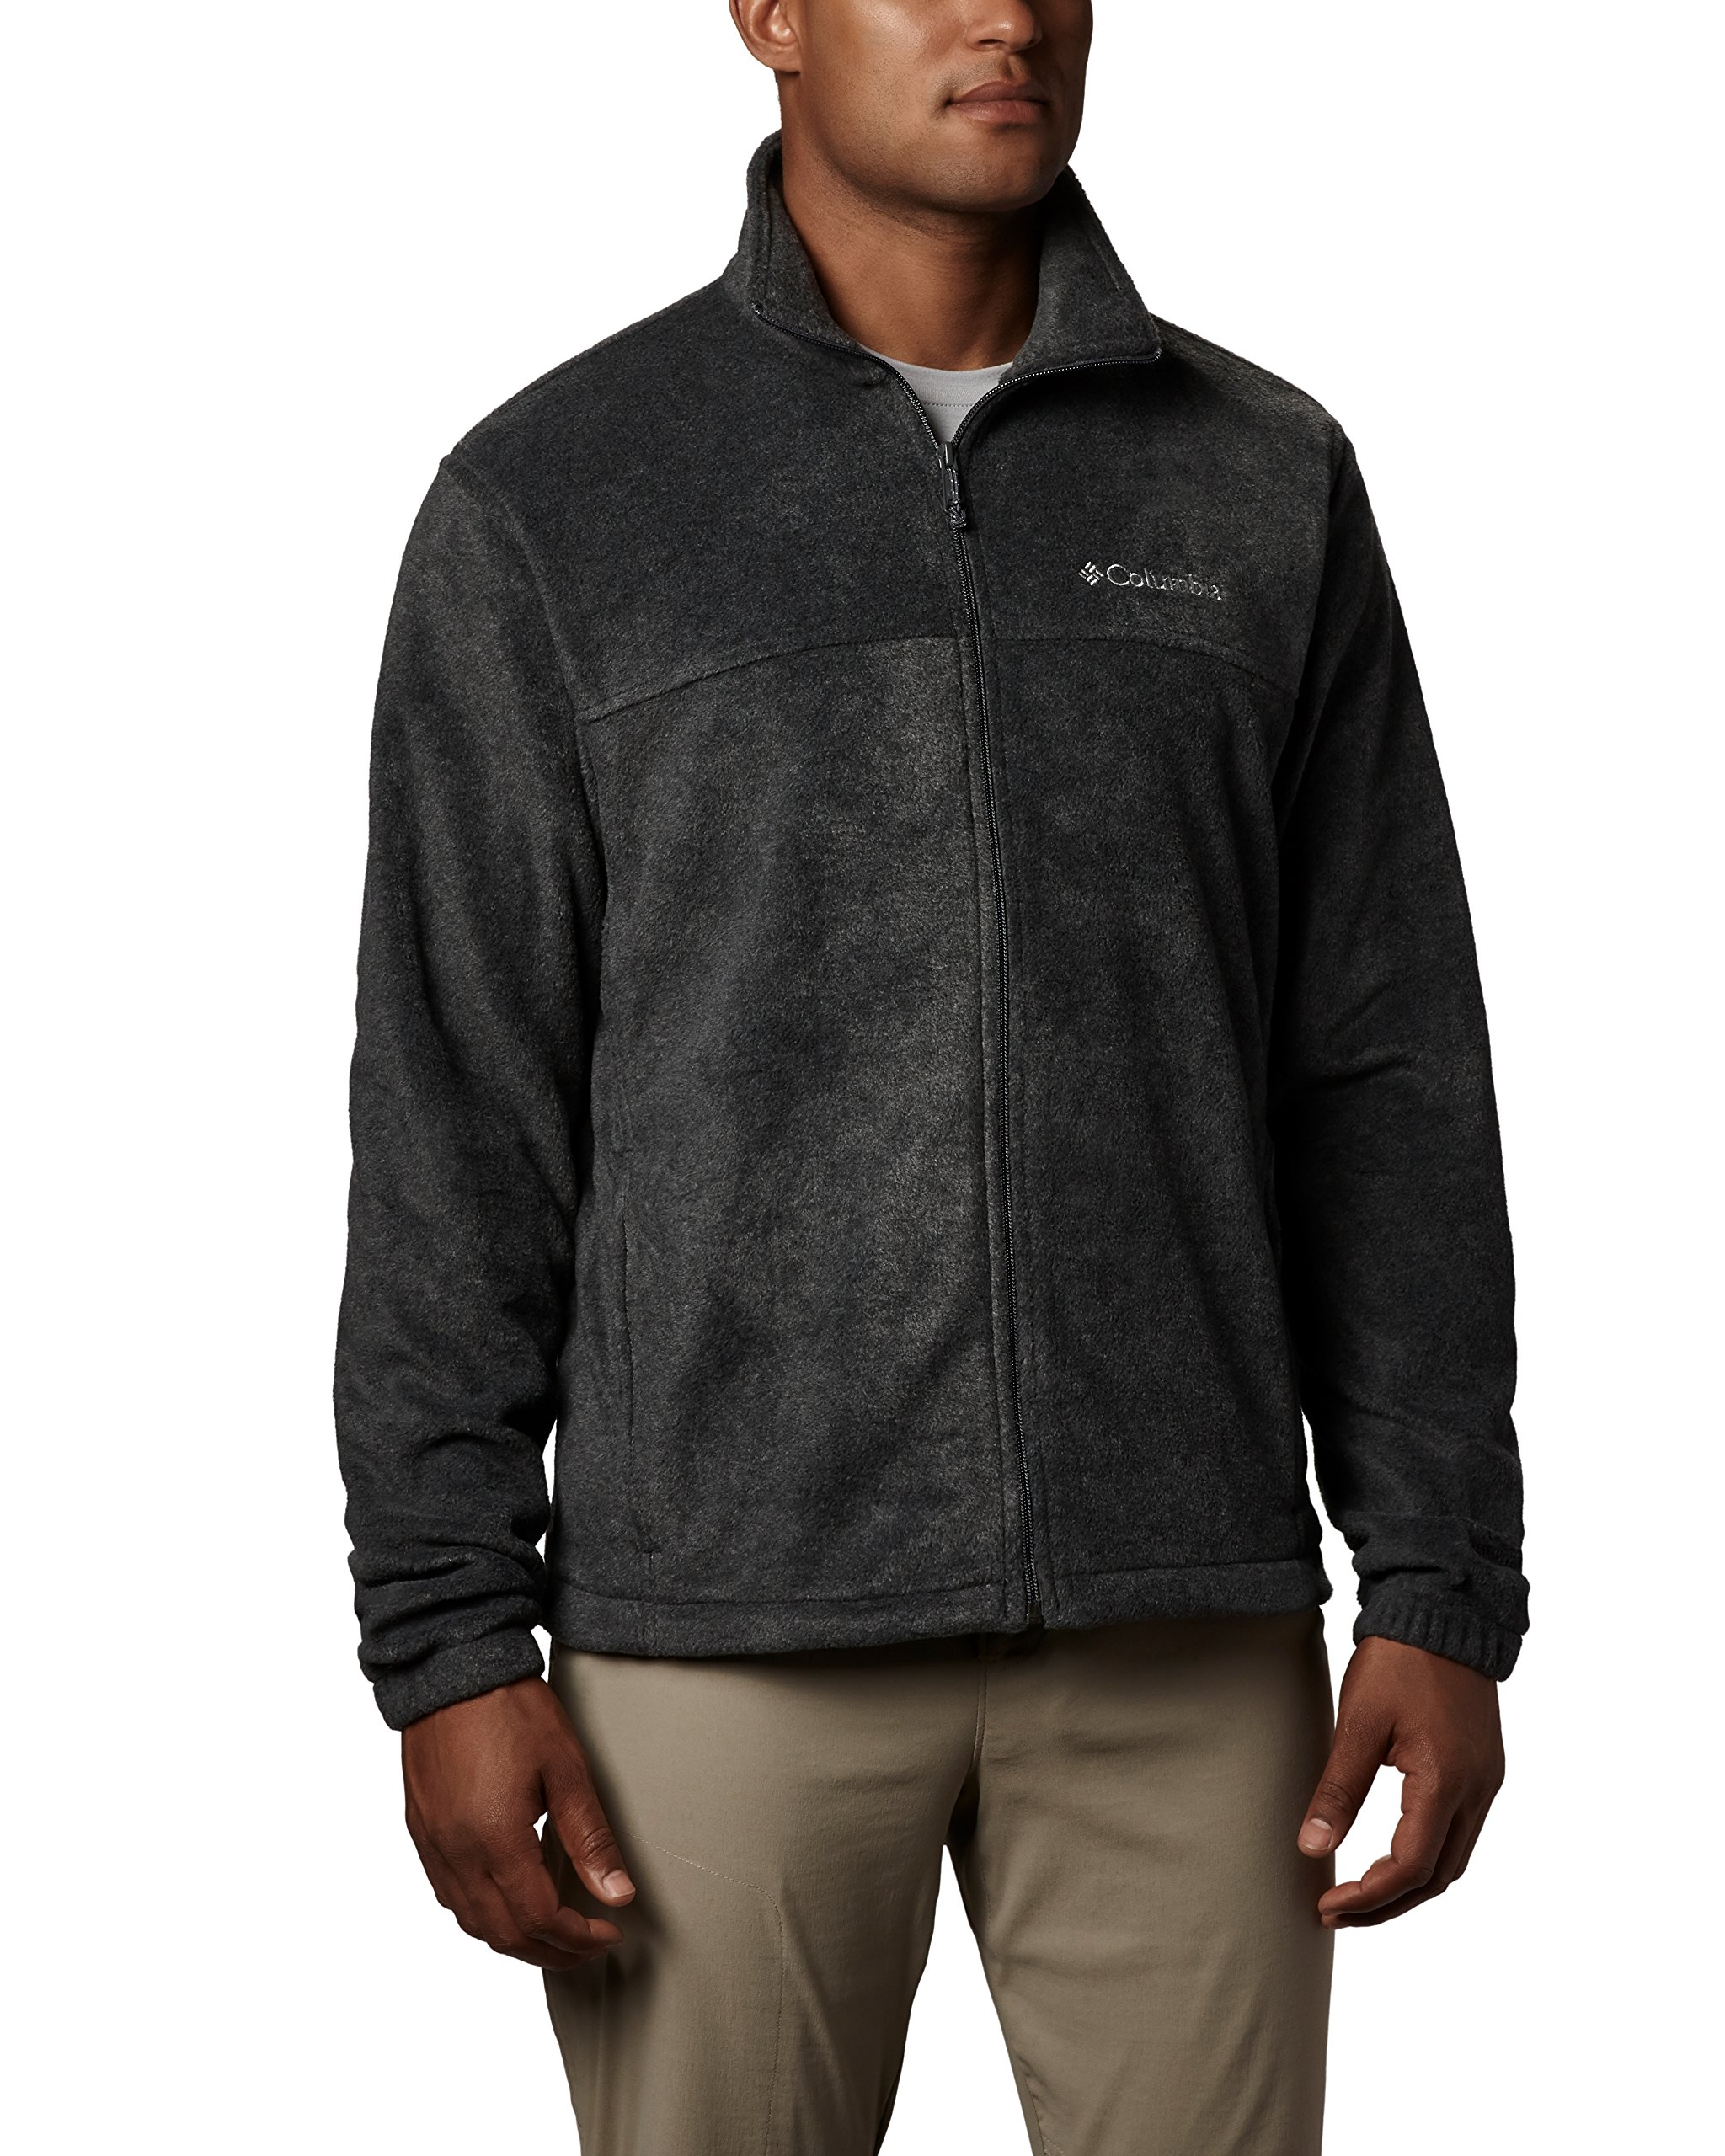 Columbia Men's Steens Mountain Full Zip 2.0 Soft Fleece Jacket, Charcoal Heather, Medium